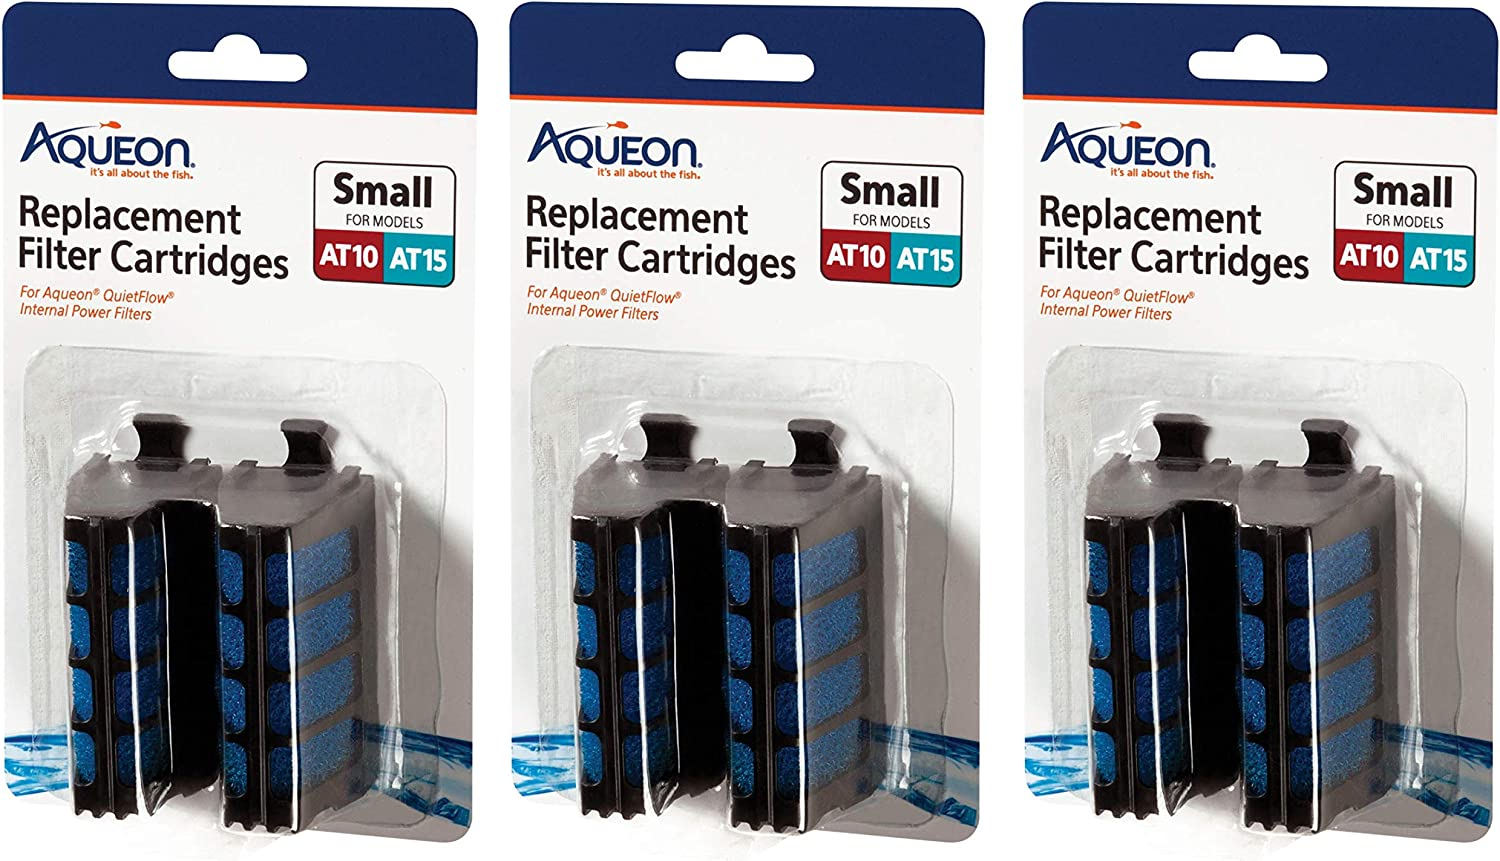 Aqueon 6 Pack of Replacement Filter Cartridges for QuietFlow Internal Power Filters, Small, for AT10 and AT15